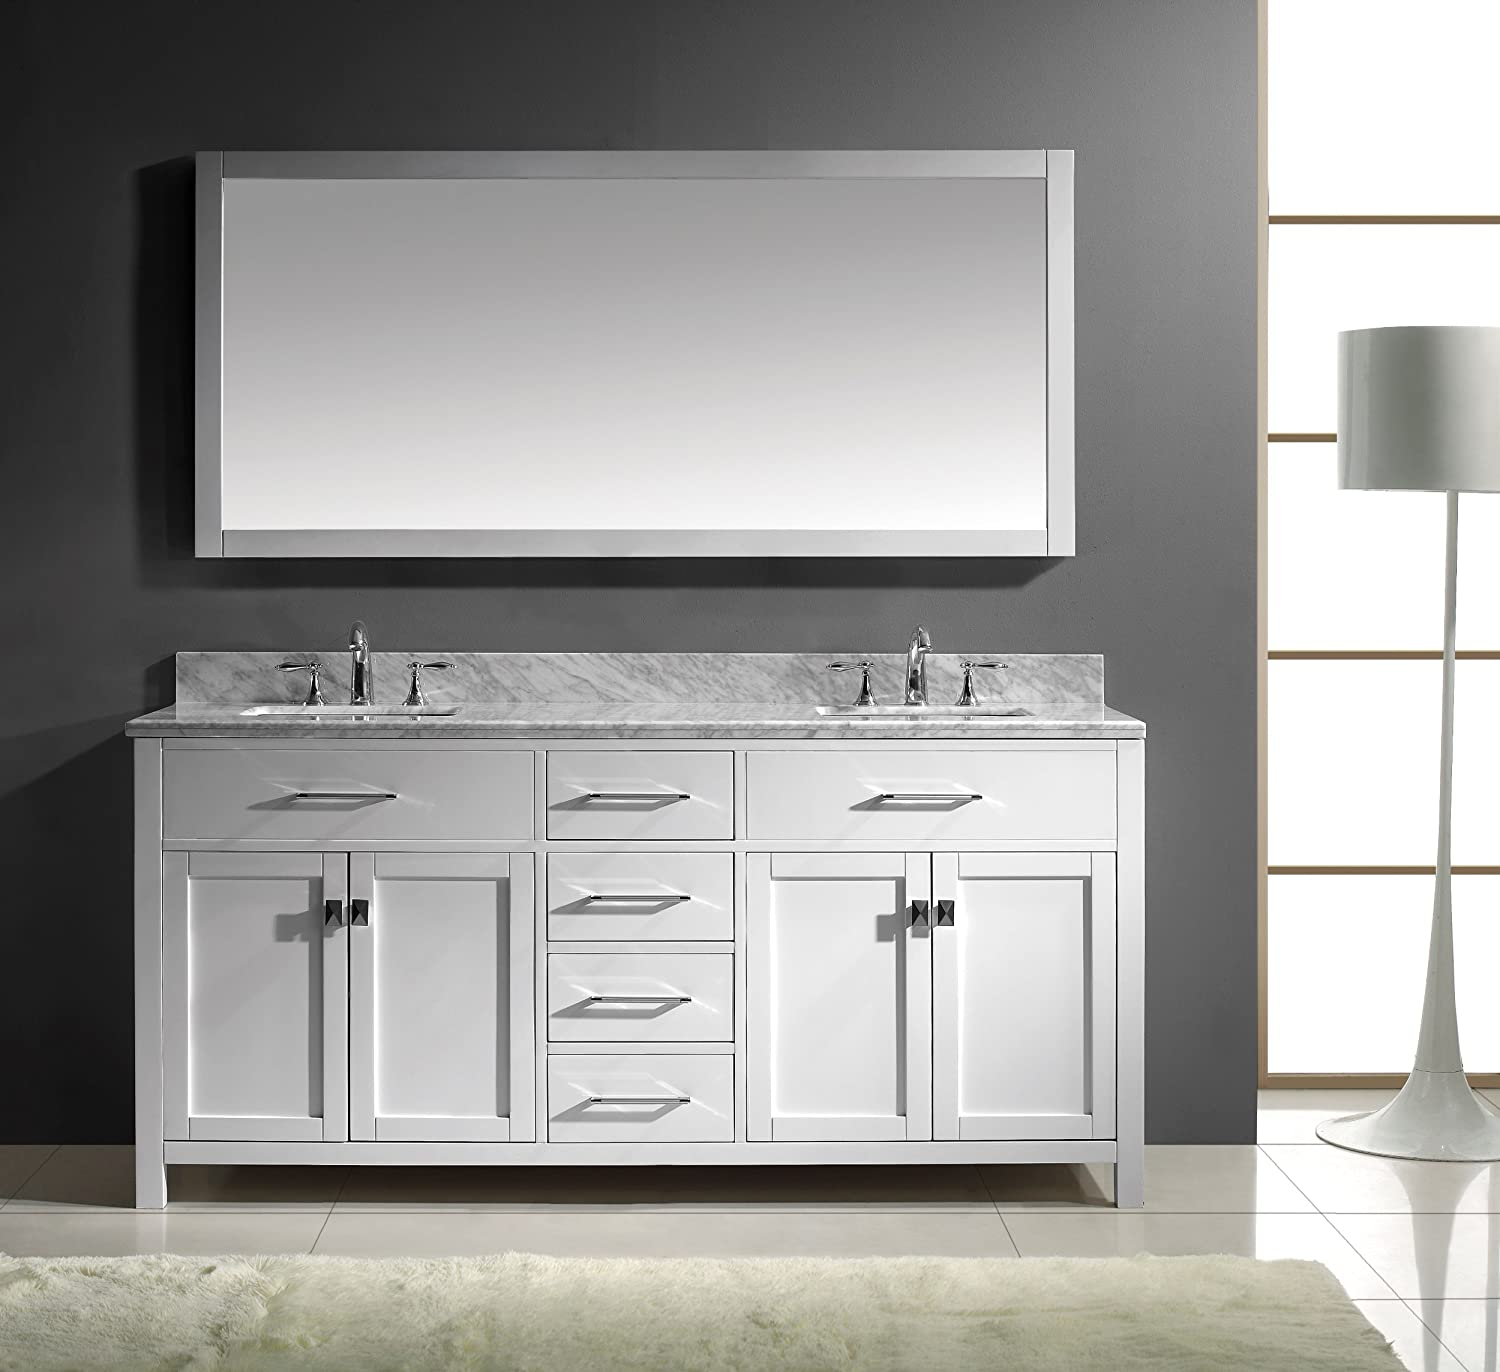 Merveilleux Virtu USA MD 2072 WMSQ WH Caroline 72 Inch Bathroom Vanity With Double  Square Sinks In White And Italian Carrera White Marble   Double Vanity With  Marble ...